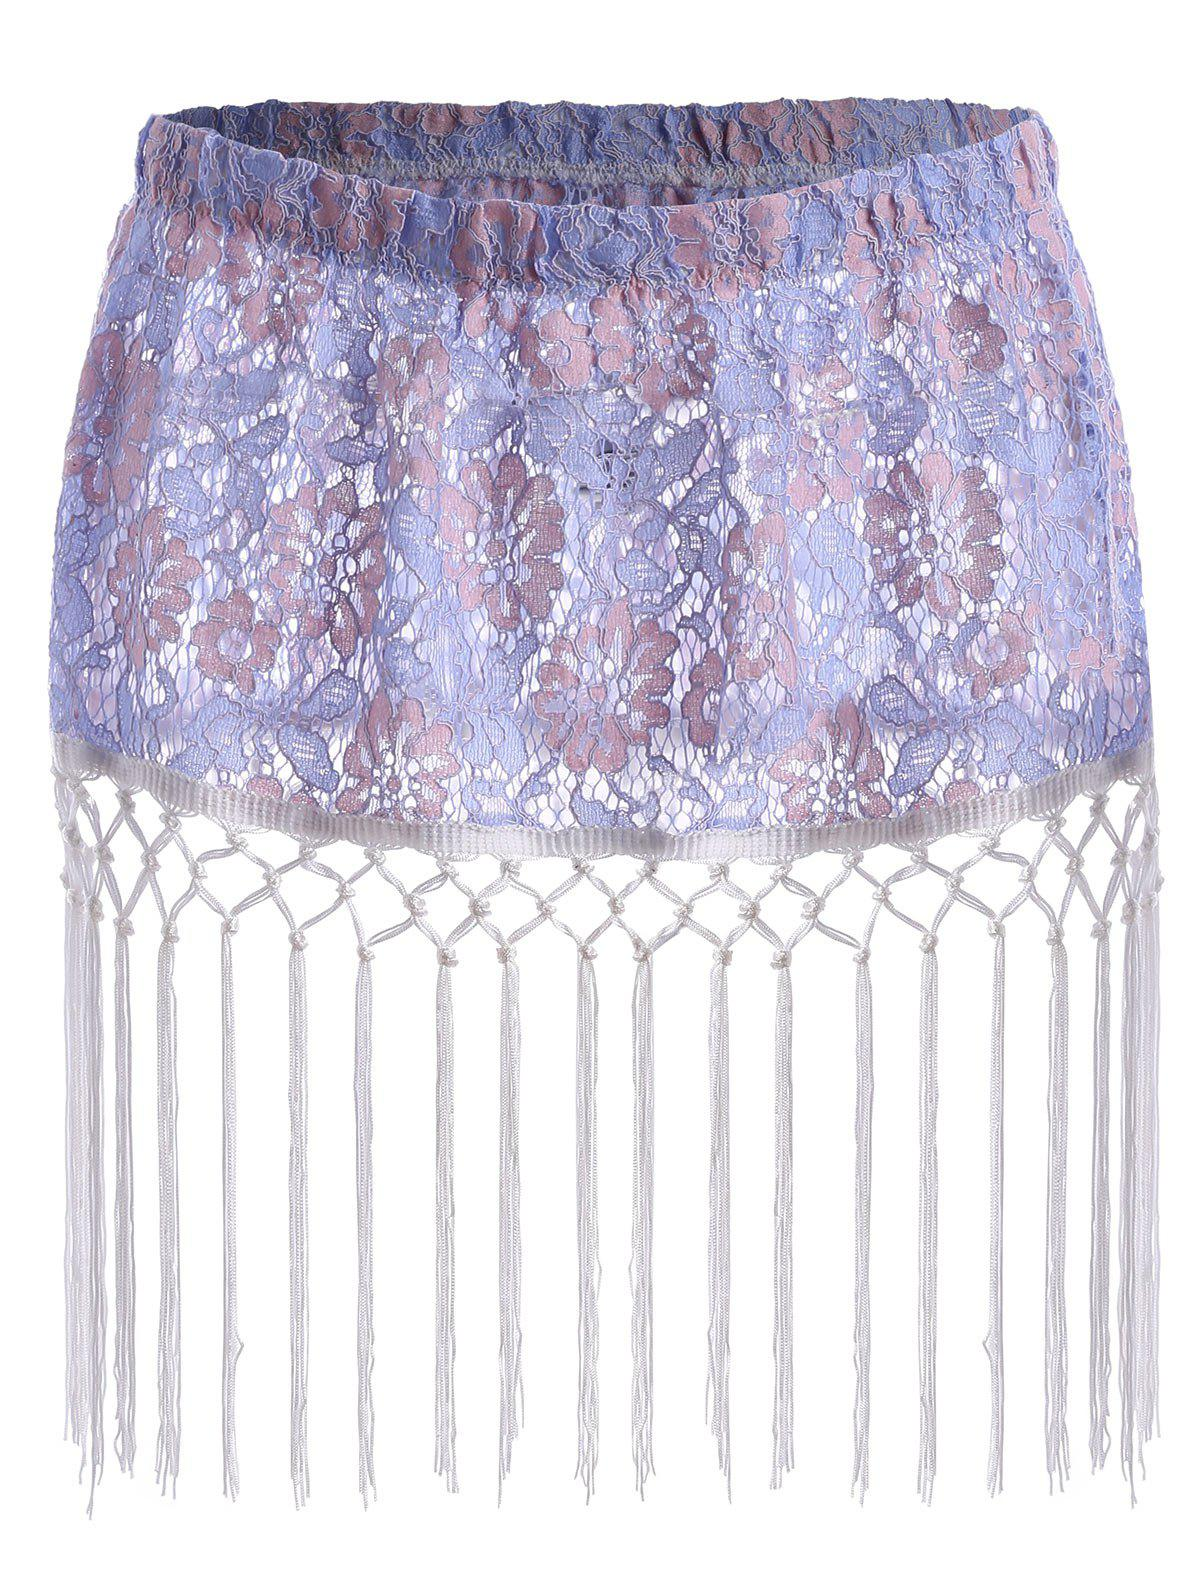 Floral Lace Tassel Plus Size Extender Sheer SkirtWOMEN<br><br>Size: 5XL; Color: LIGHT BLUE; Material: Cotton,Polyester; Length: Mini; Silhouette: Straight; Pattern Type: Floral; Season: Fall,Summer; Weight: 0.1650kg; Package Contents: 1 x Skirt;